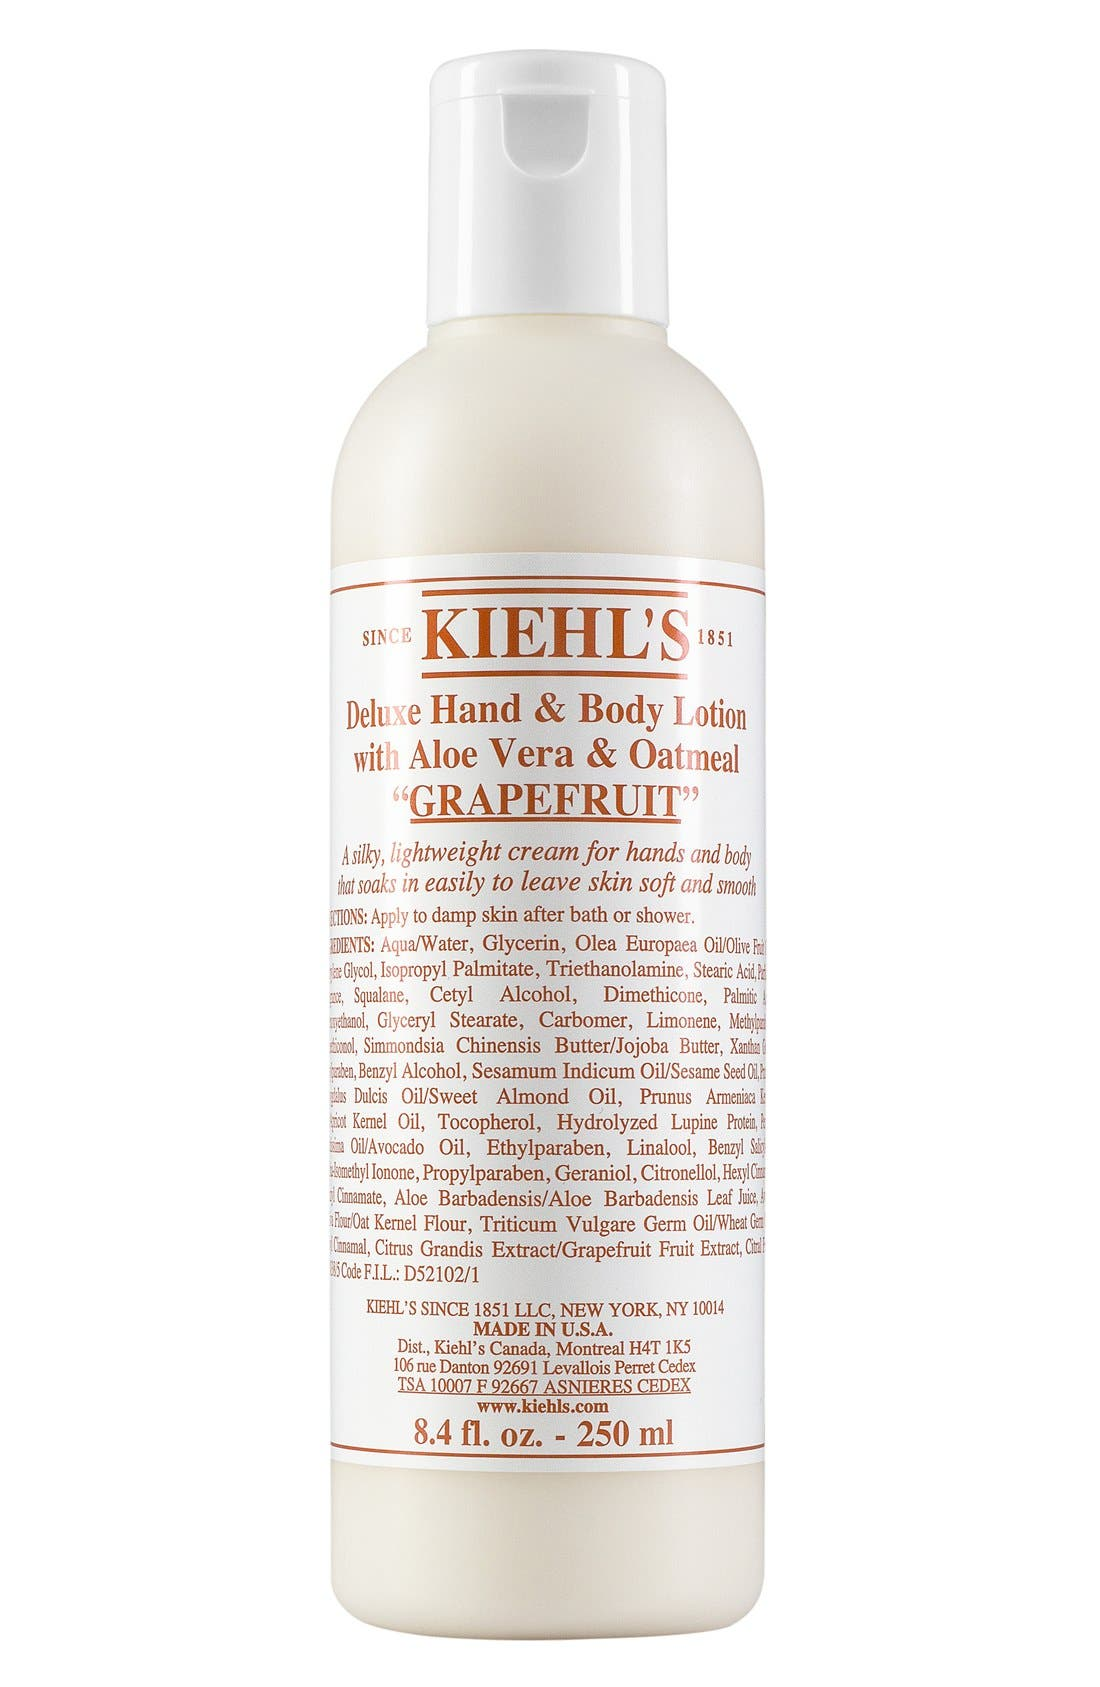 Kiehl's Since 1851 Deluxe Hand & Body Lotion with Aloe Vera & Oatmeal (Grapefruit)